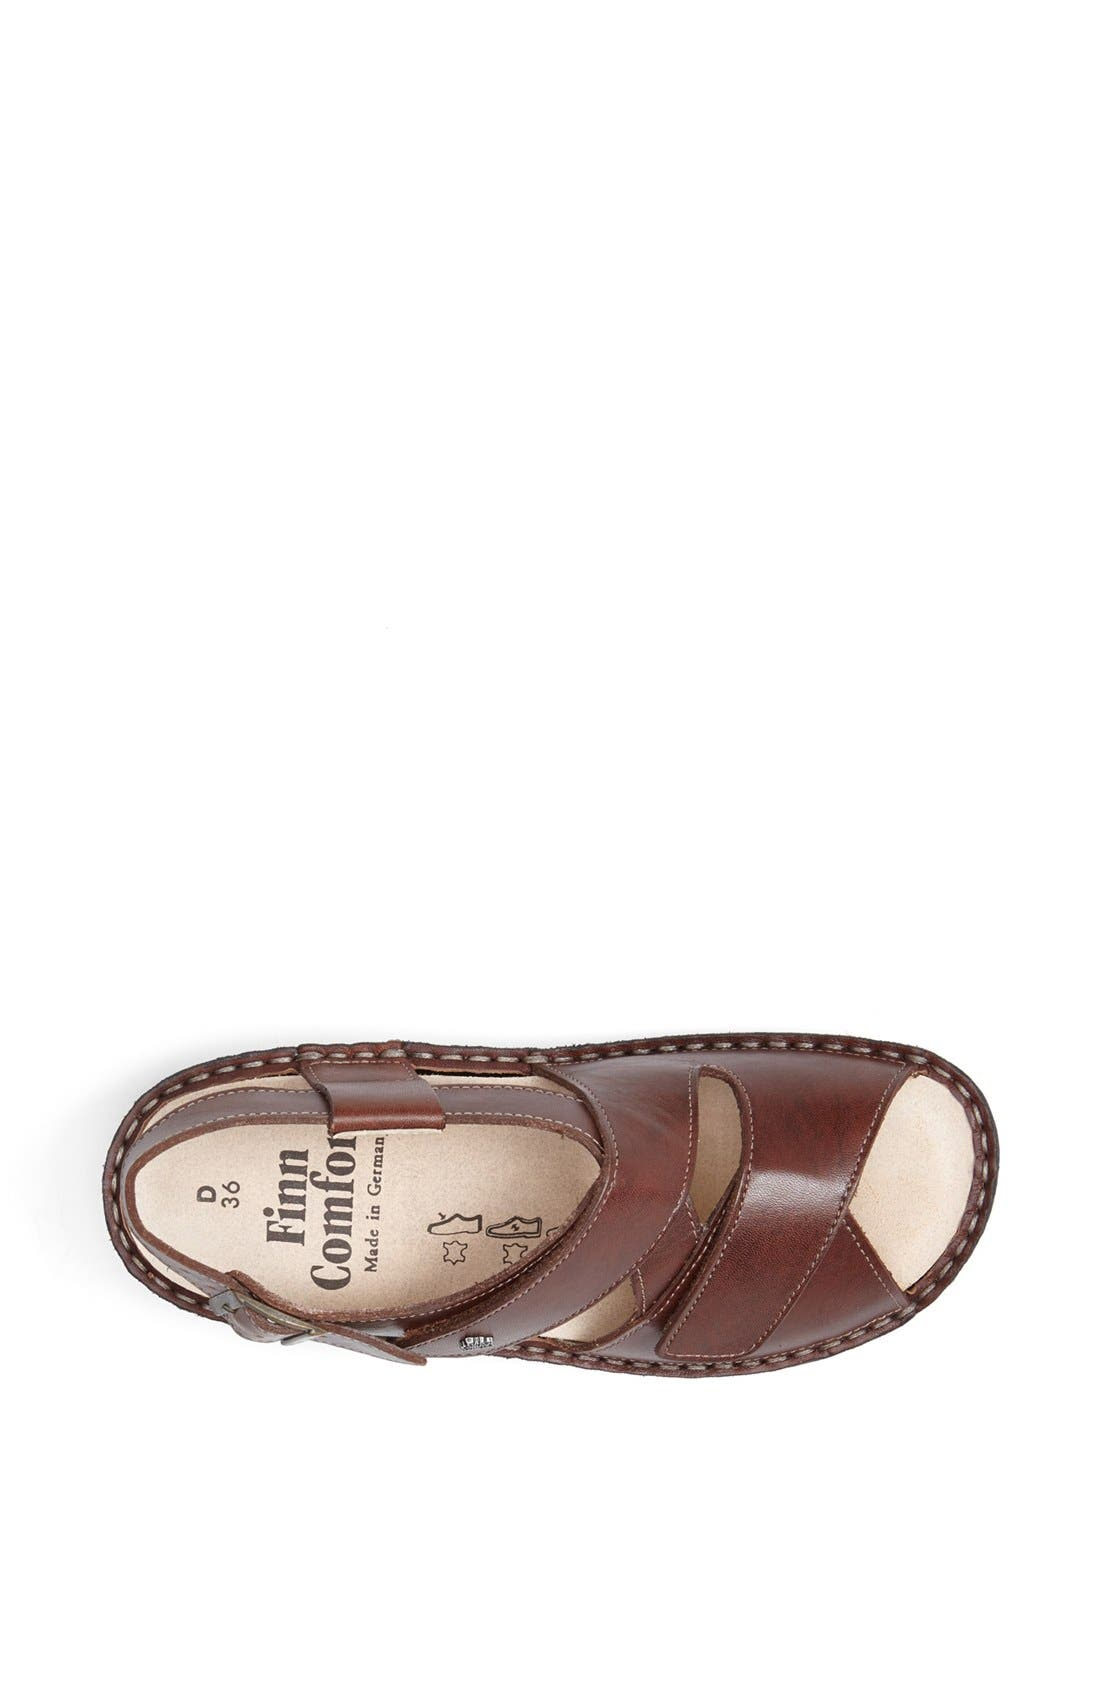 'Jersey' Sandal,                             Alternate thumbnail 3, color,                             Brandy Country